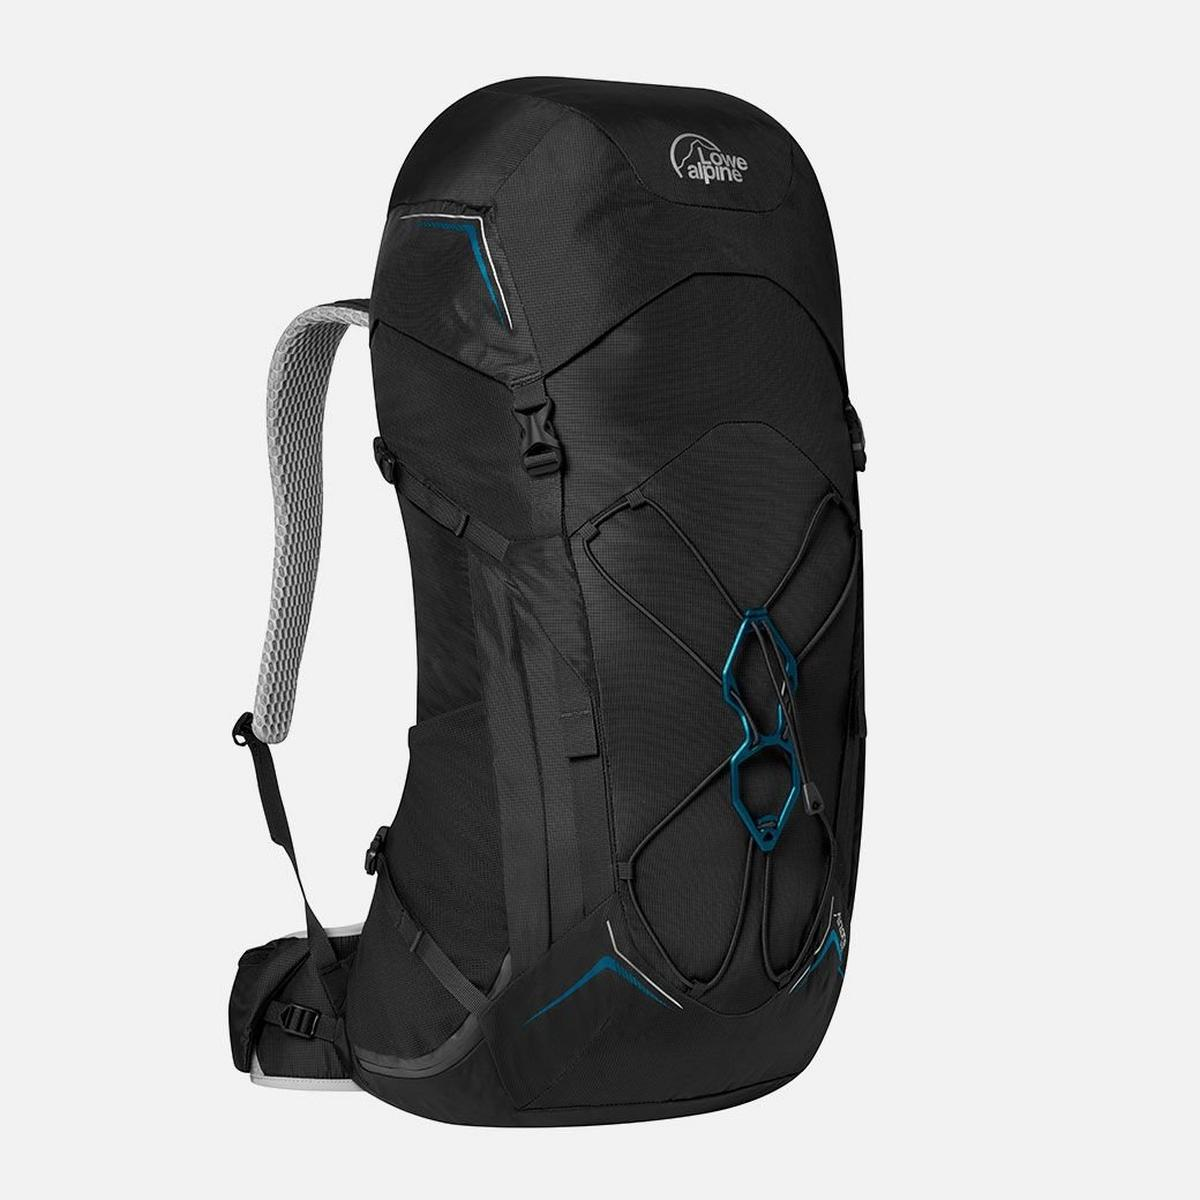 Lowe Alpine AirZone Pro 35 - 45L Backpack